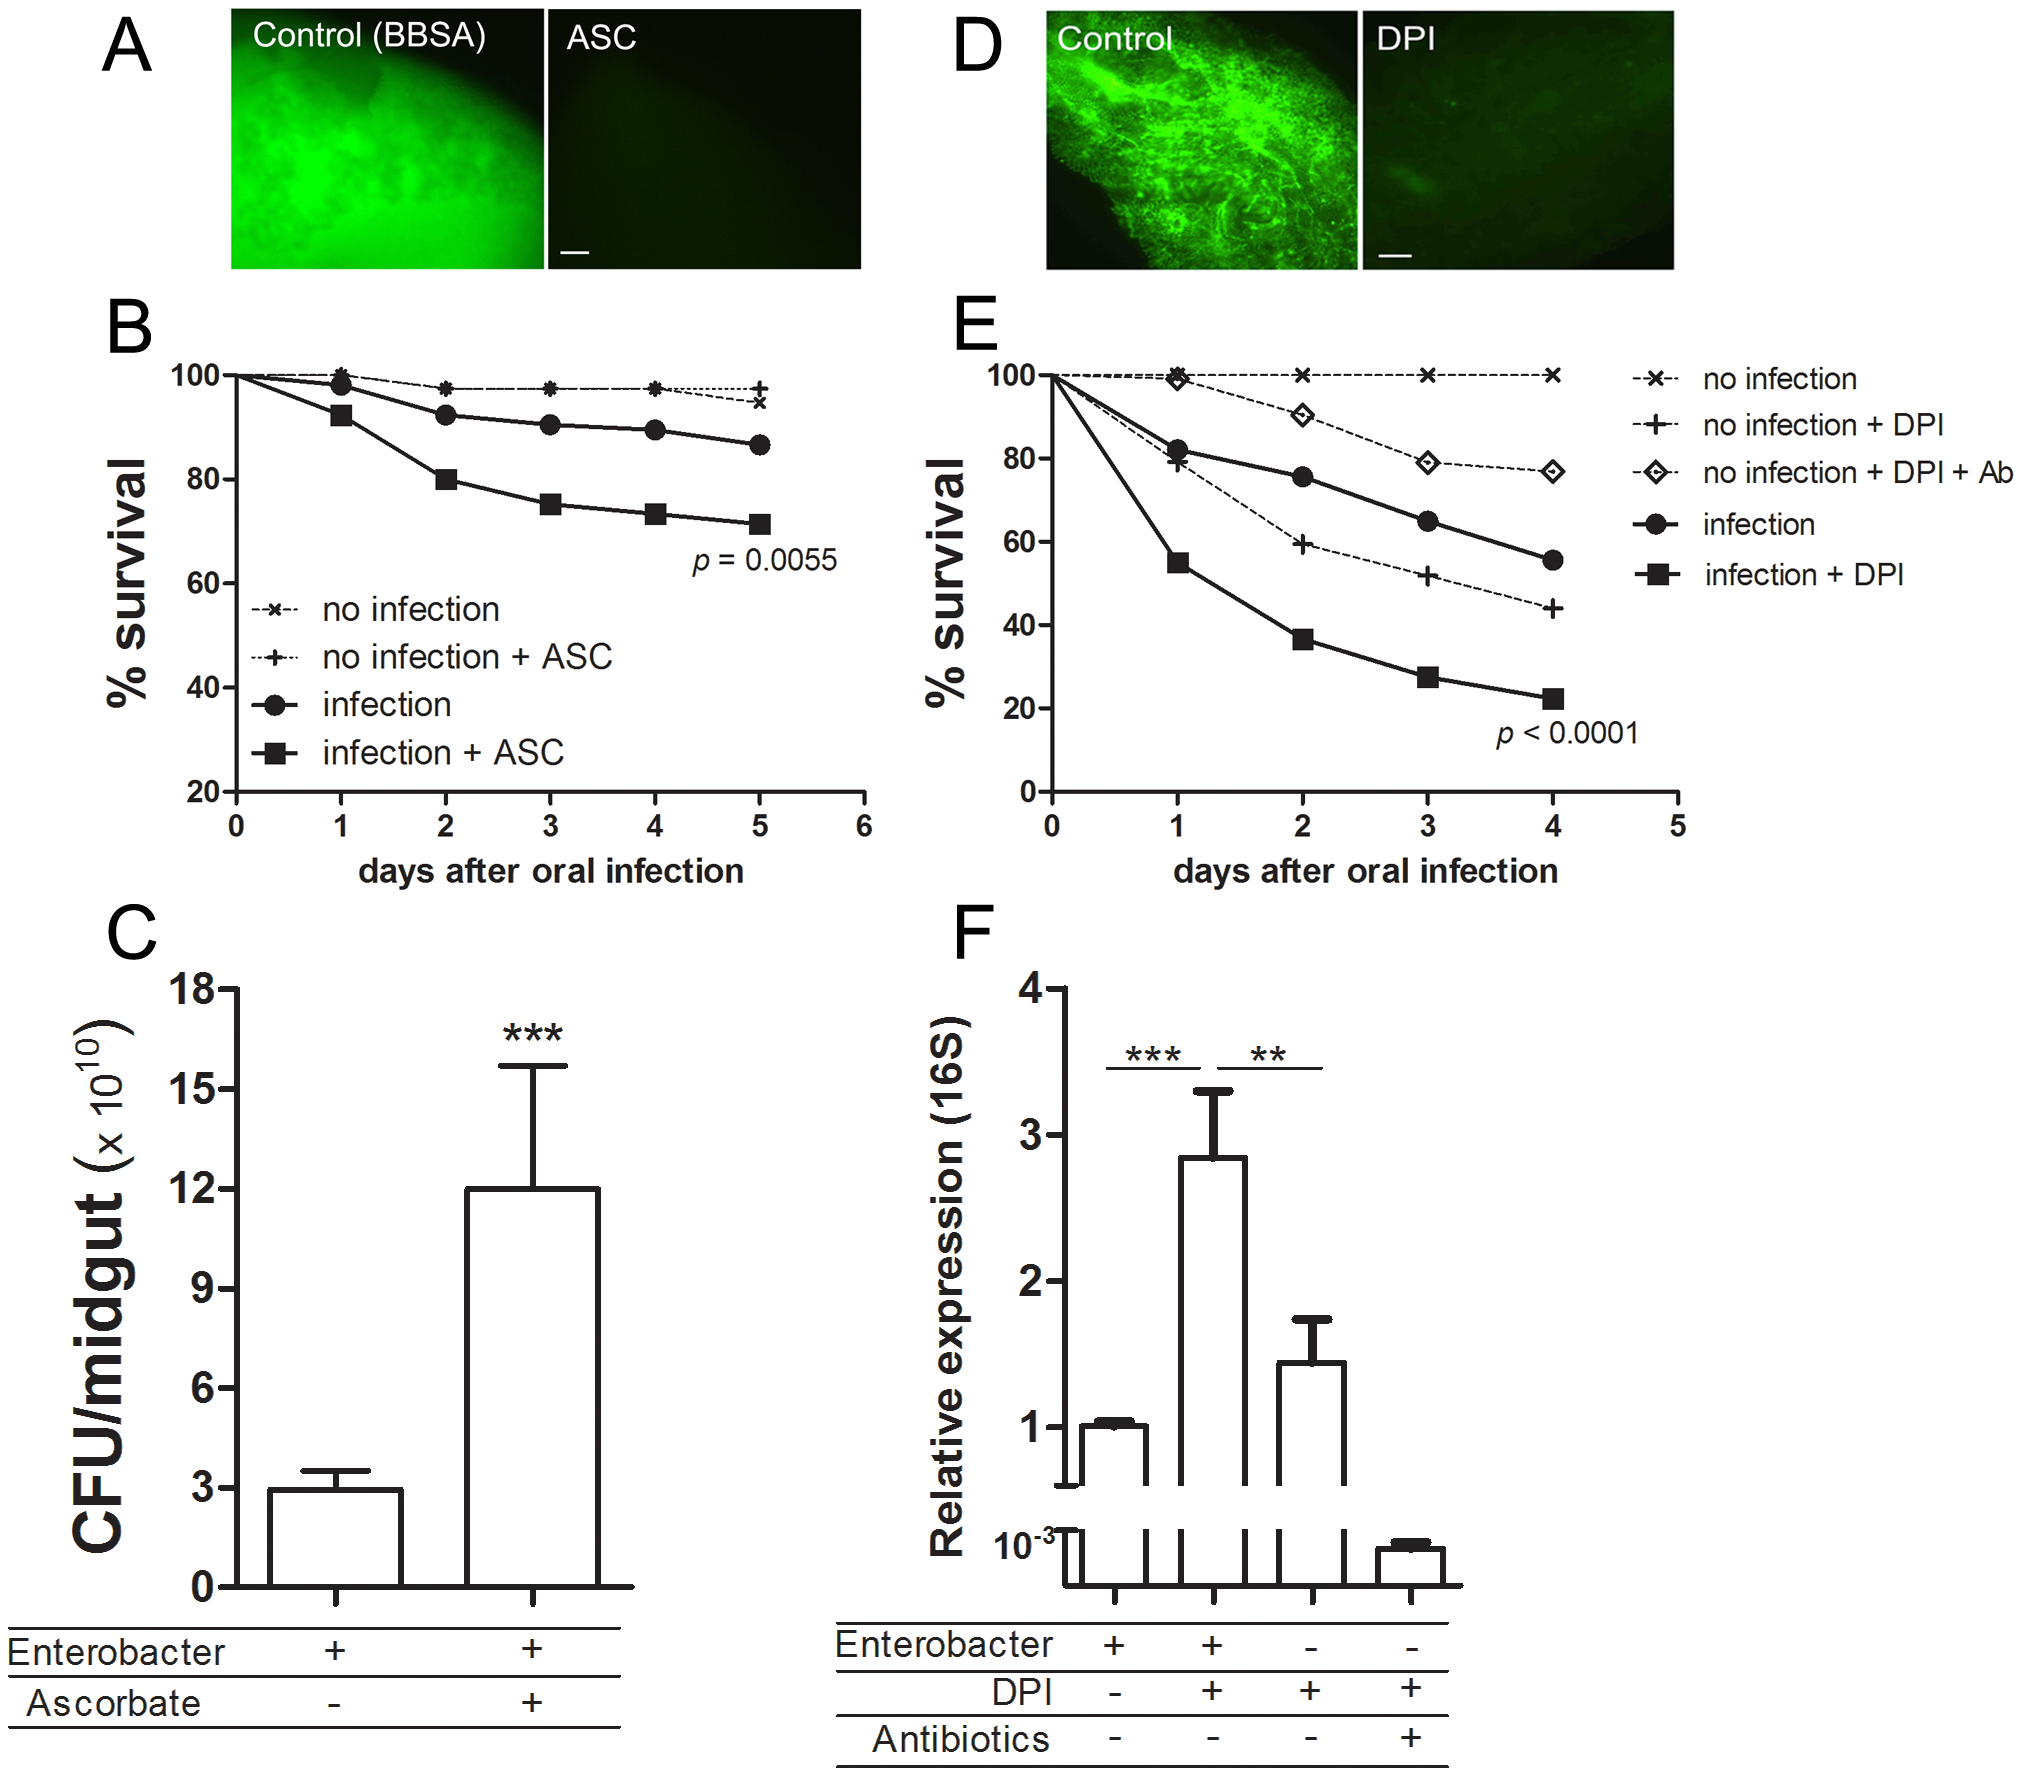 Redox modulation of bacterial growth in the midgut.